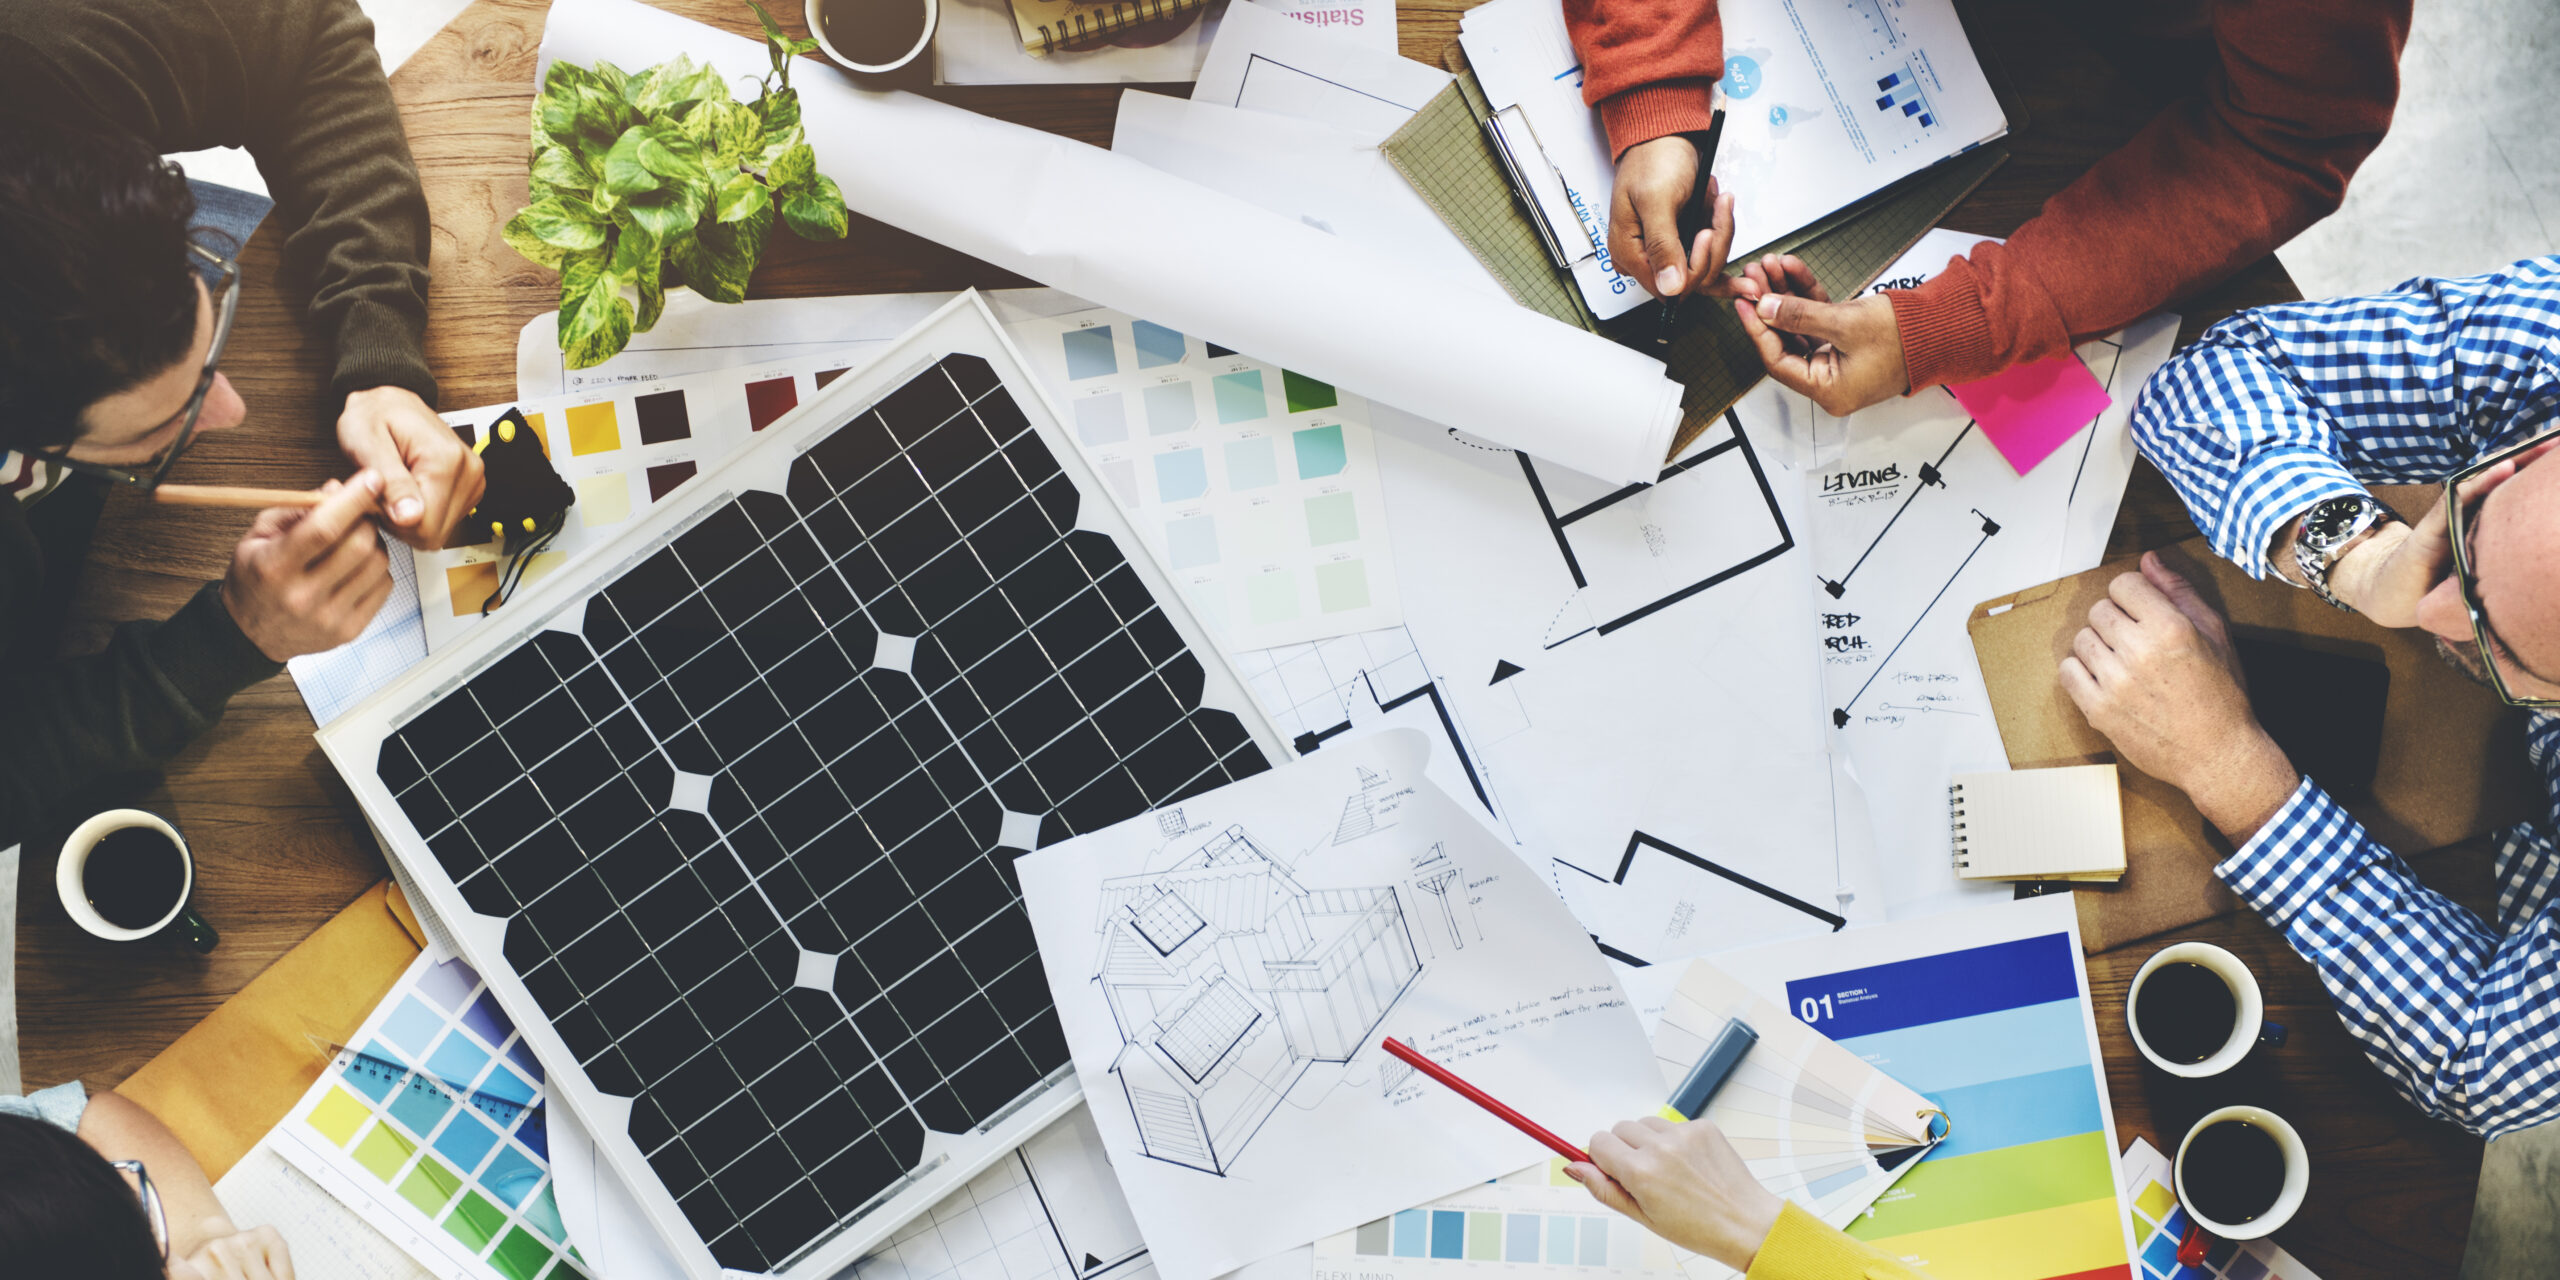 Business,People,Discussion,Solar,Power,Energy,Concept